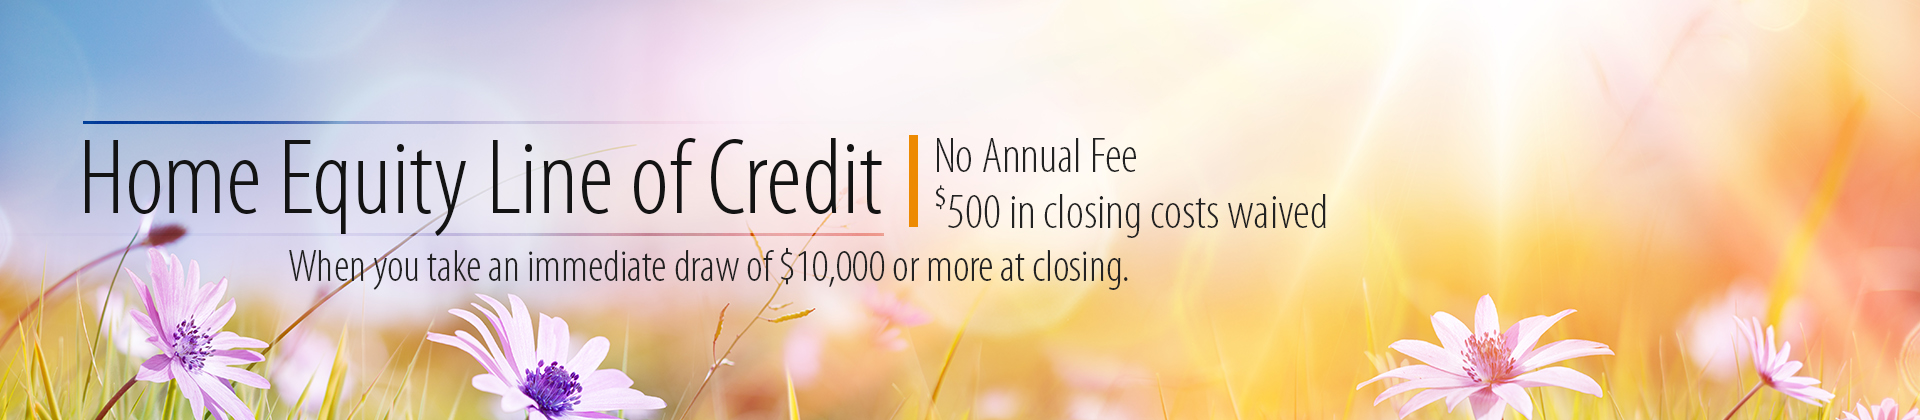 Home Equity Line of Credit - No Annual Fee - $500 in closing costs waived - When you take an immediate draw of $10,000 or more at closing.